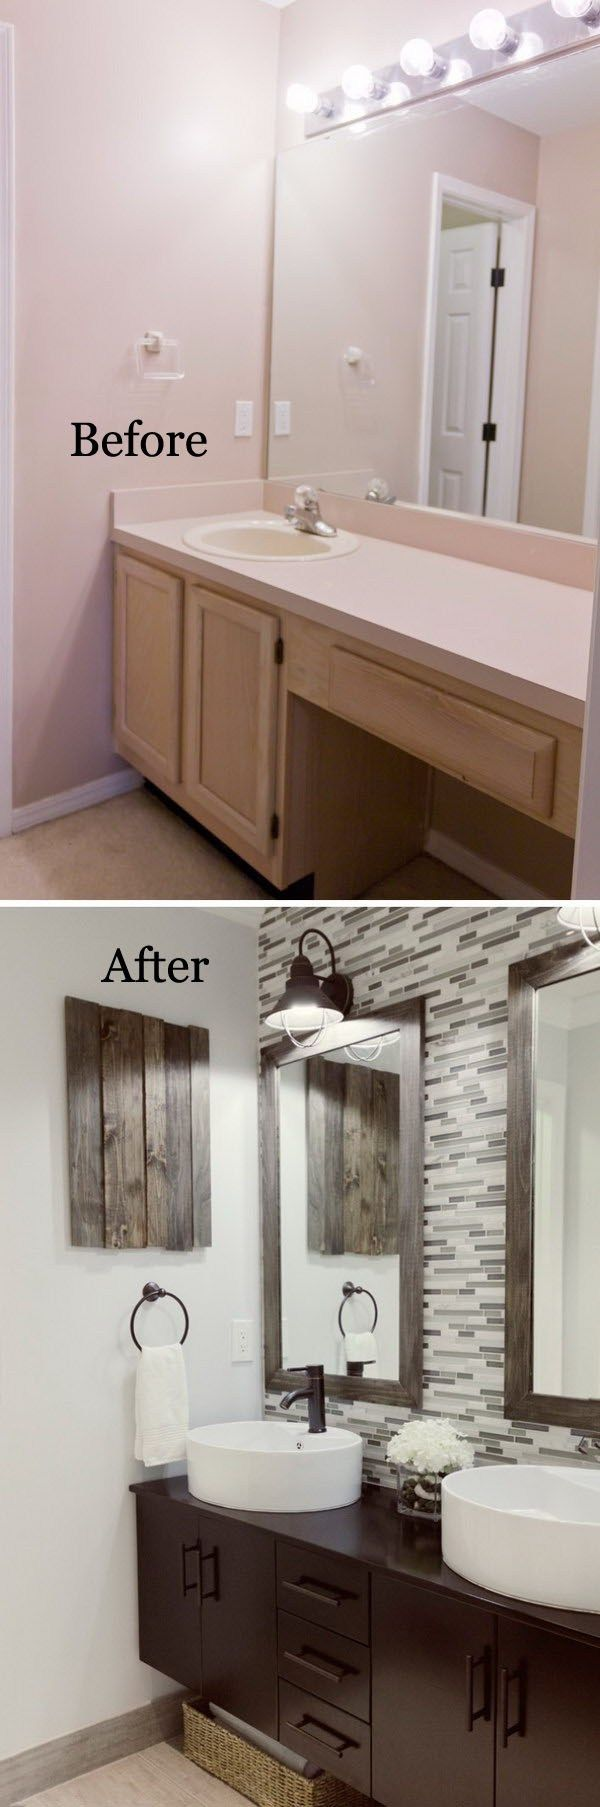 Diy Show Off Home Renovation Home Remodeling Bathrooms Remodel